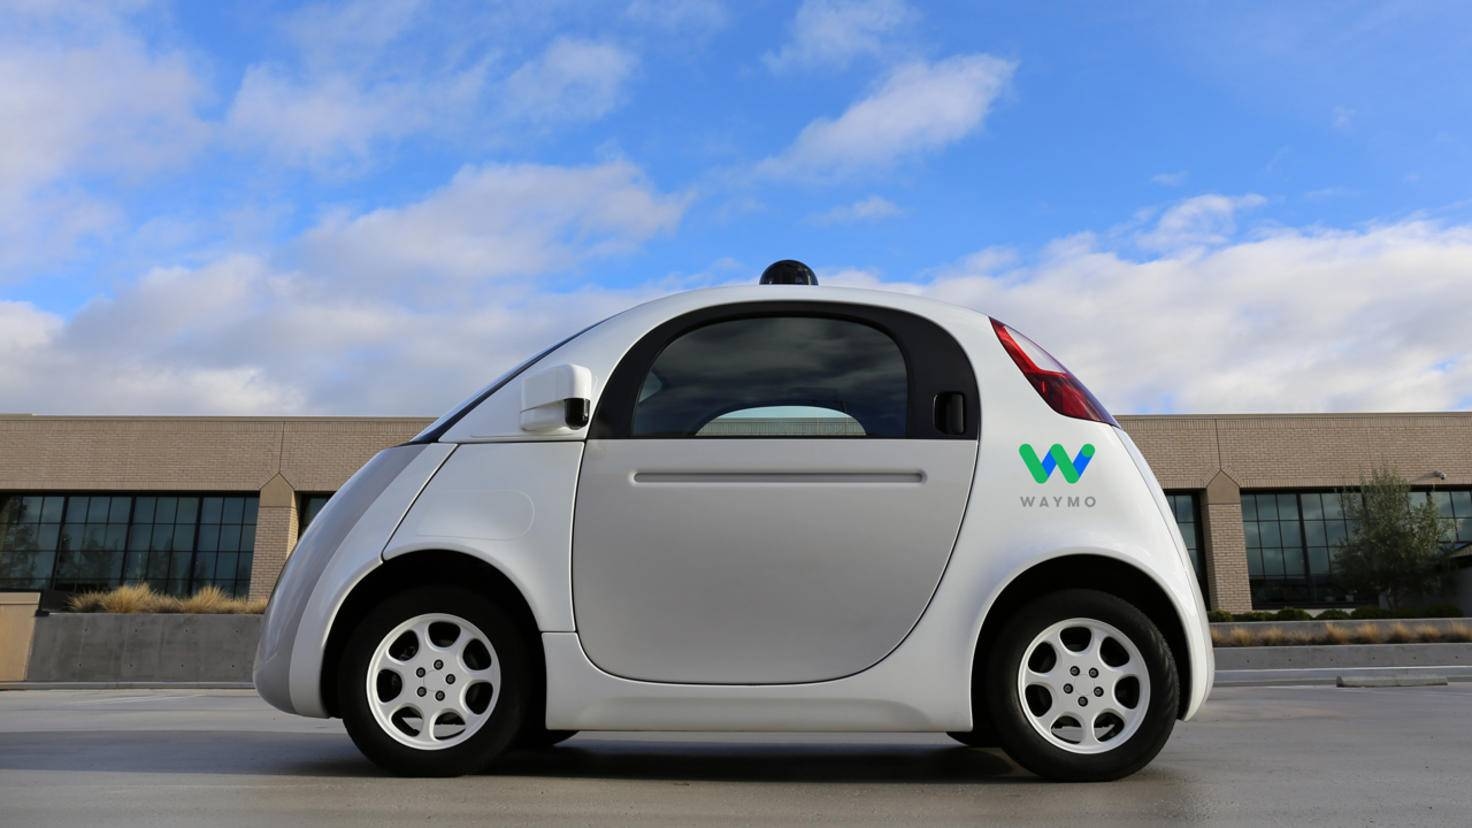 Google Car Waymo Firefly